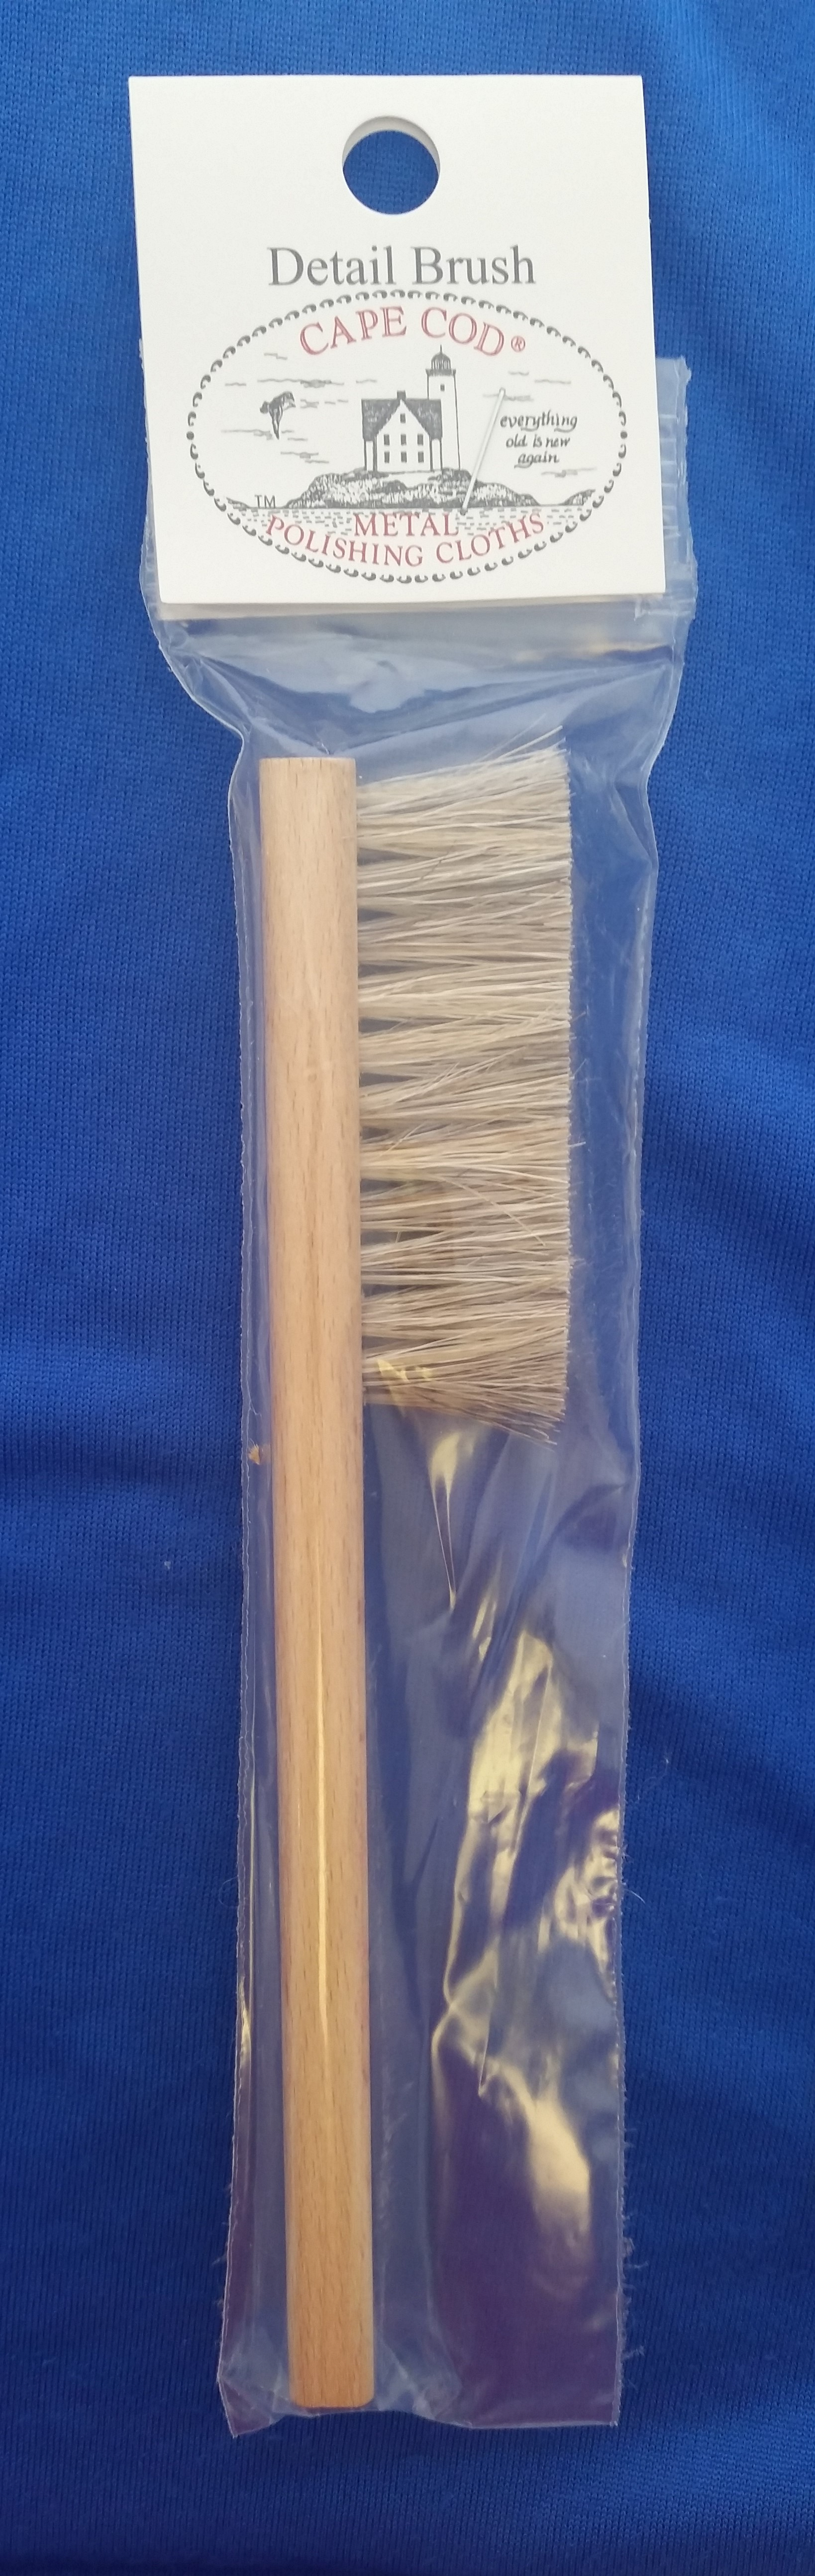 Cape Cod - 'Silver Care Products' - Horsehair Brush